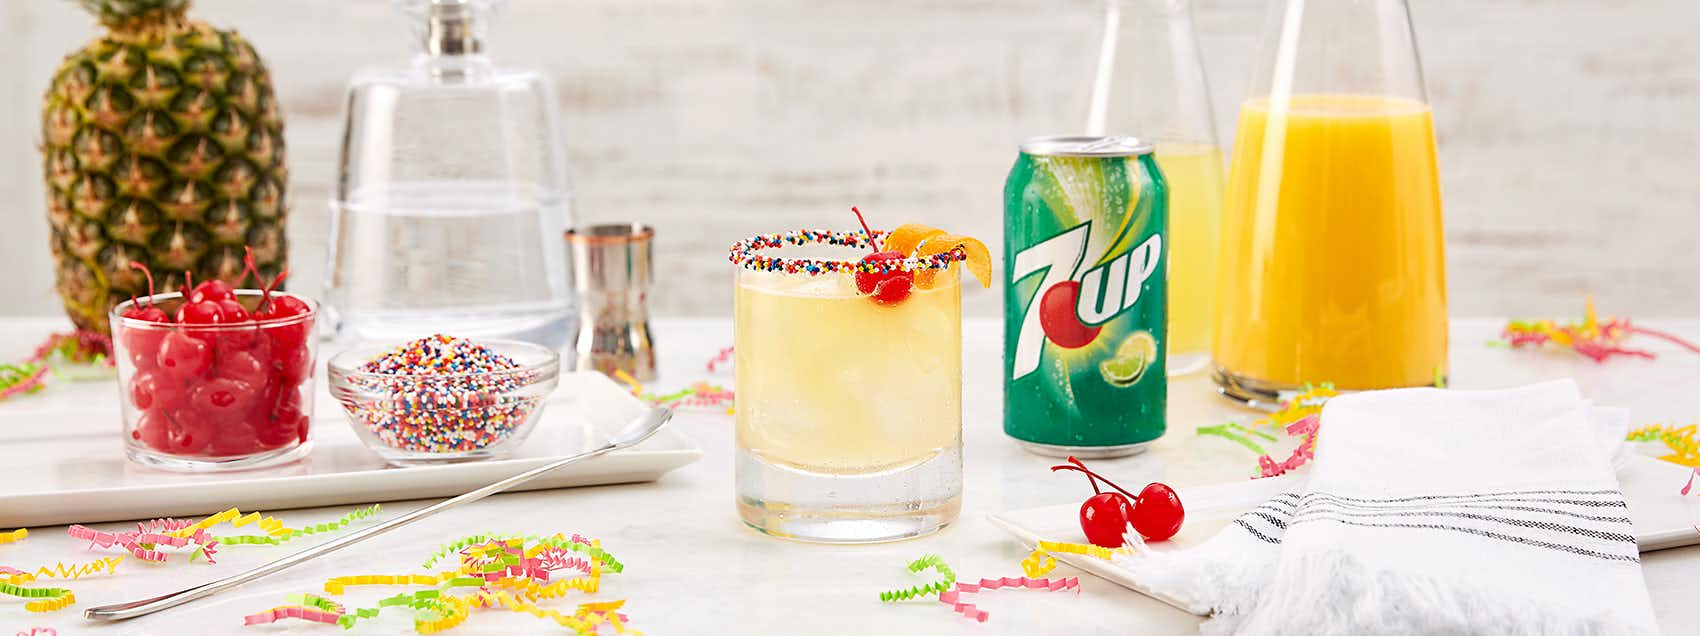 7UP Side Down Cocktail